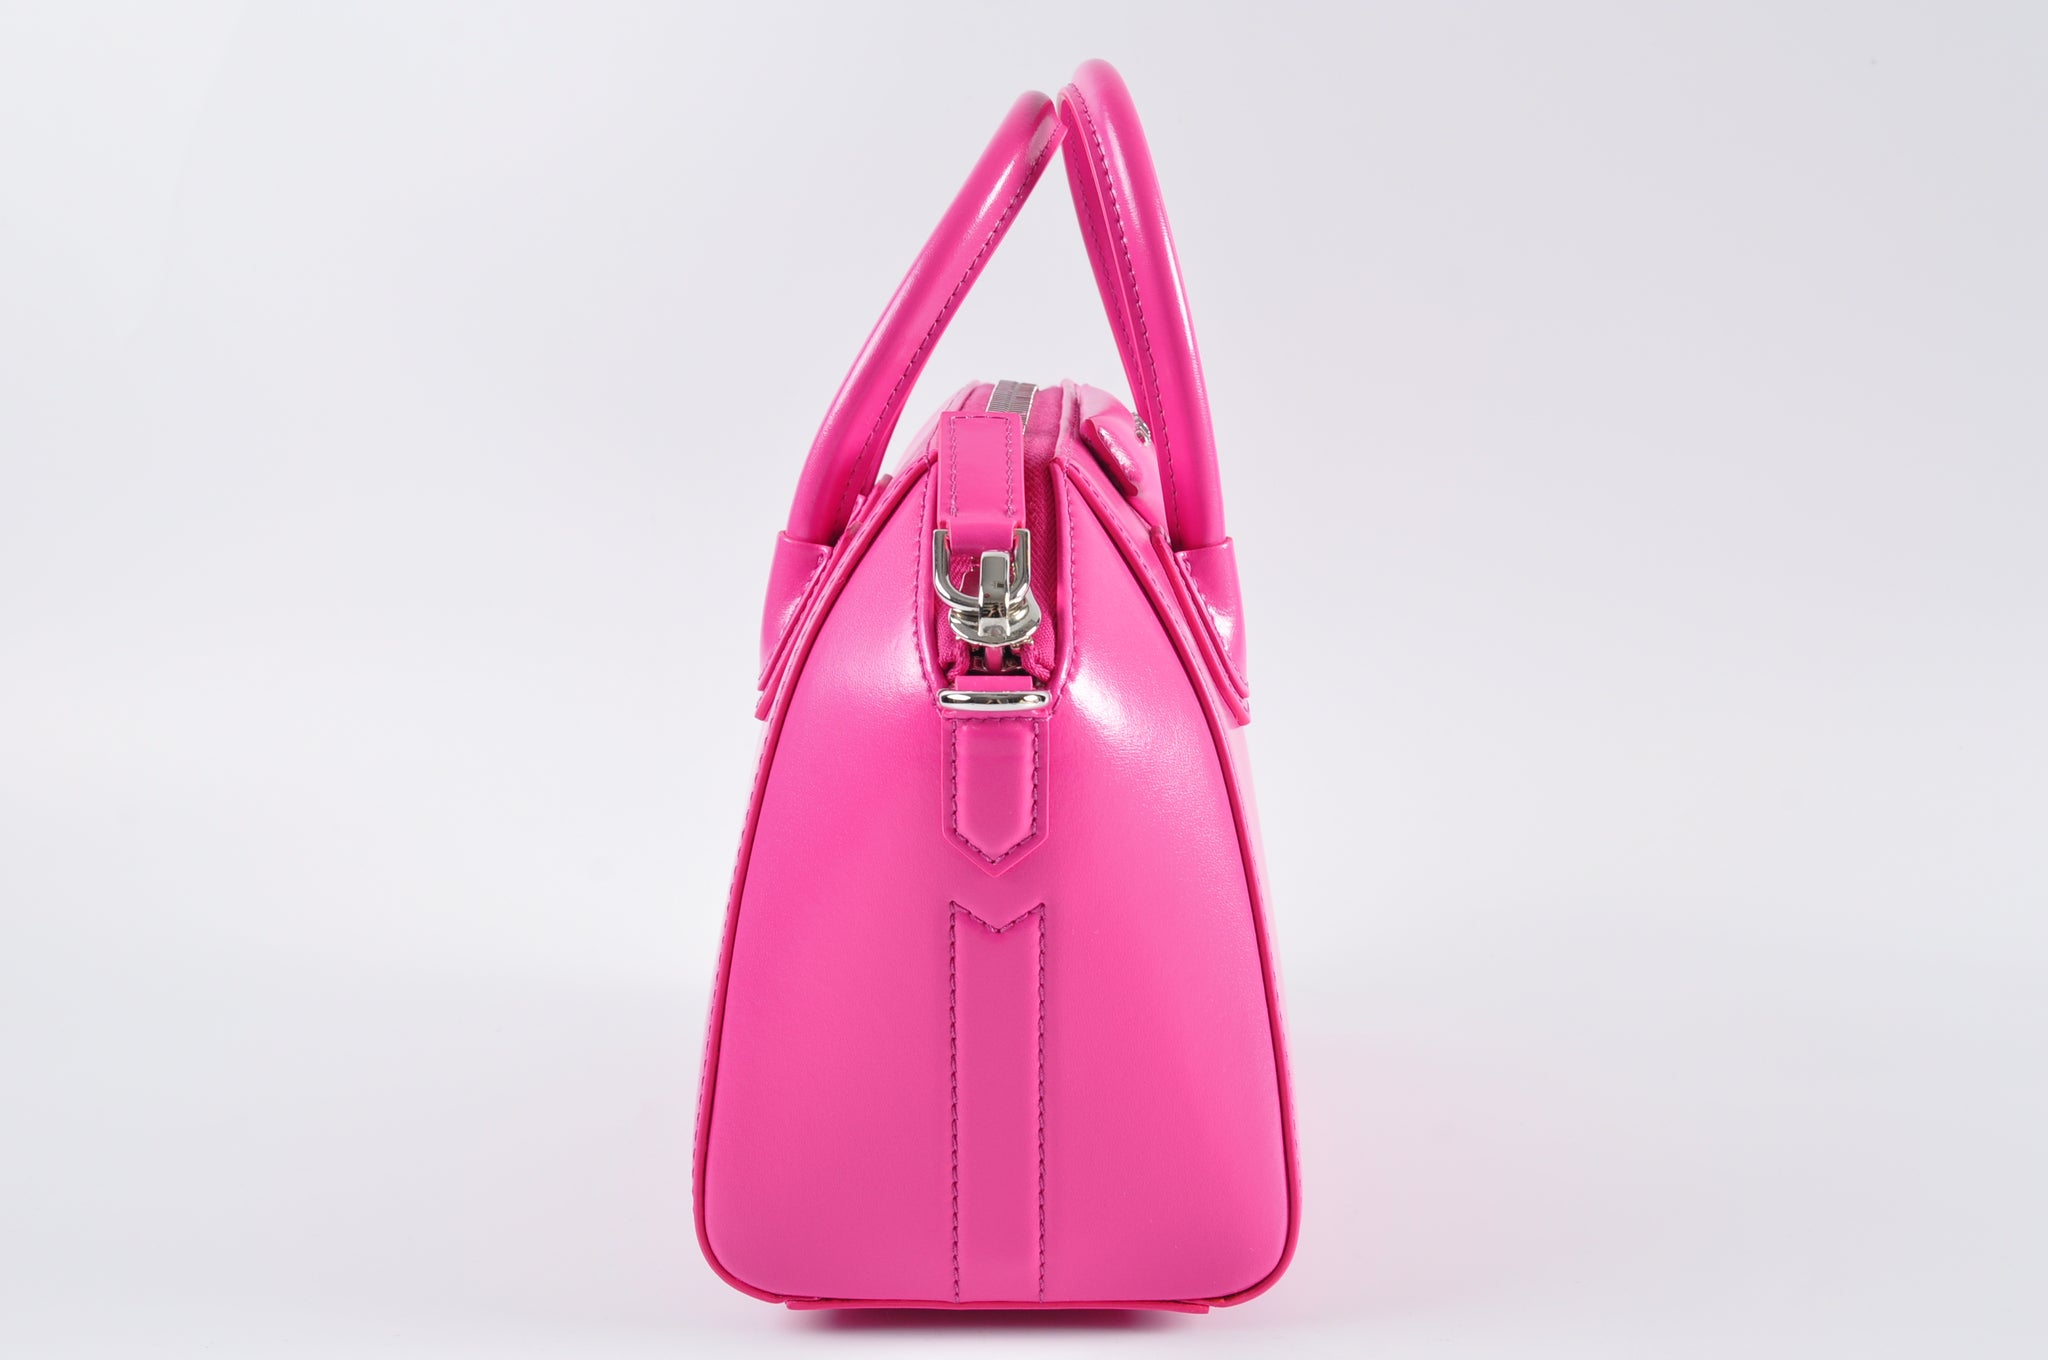 Givenchy Antigona Mini Box Calfskin Satchel Bag in Shocking Pink